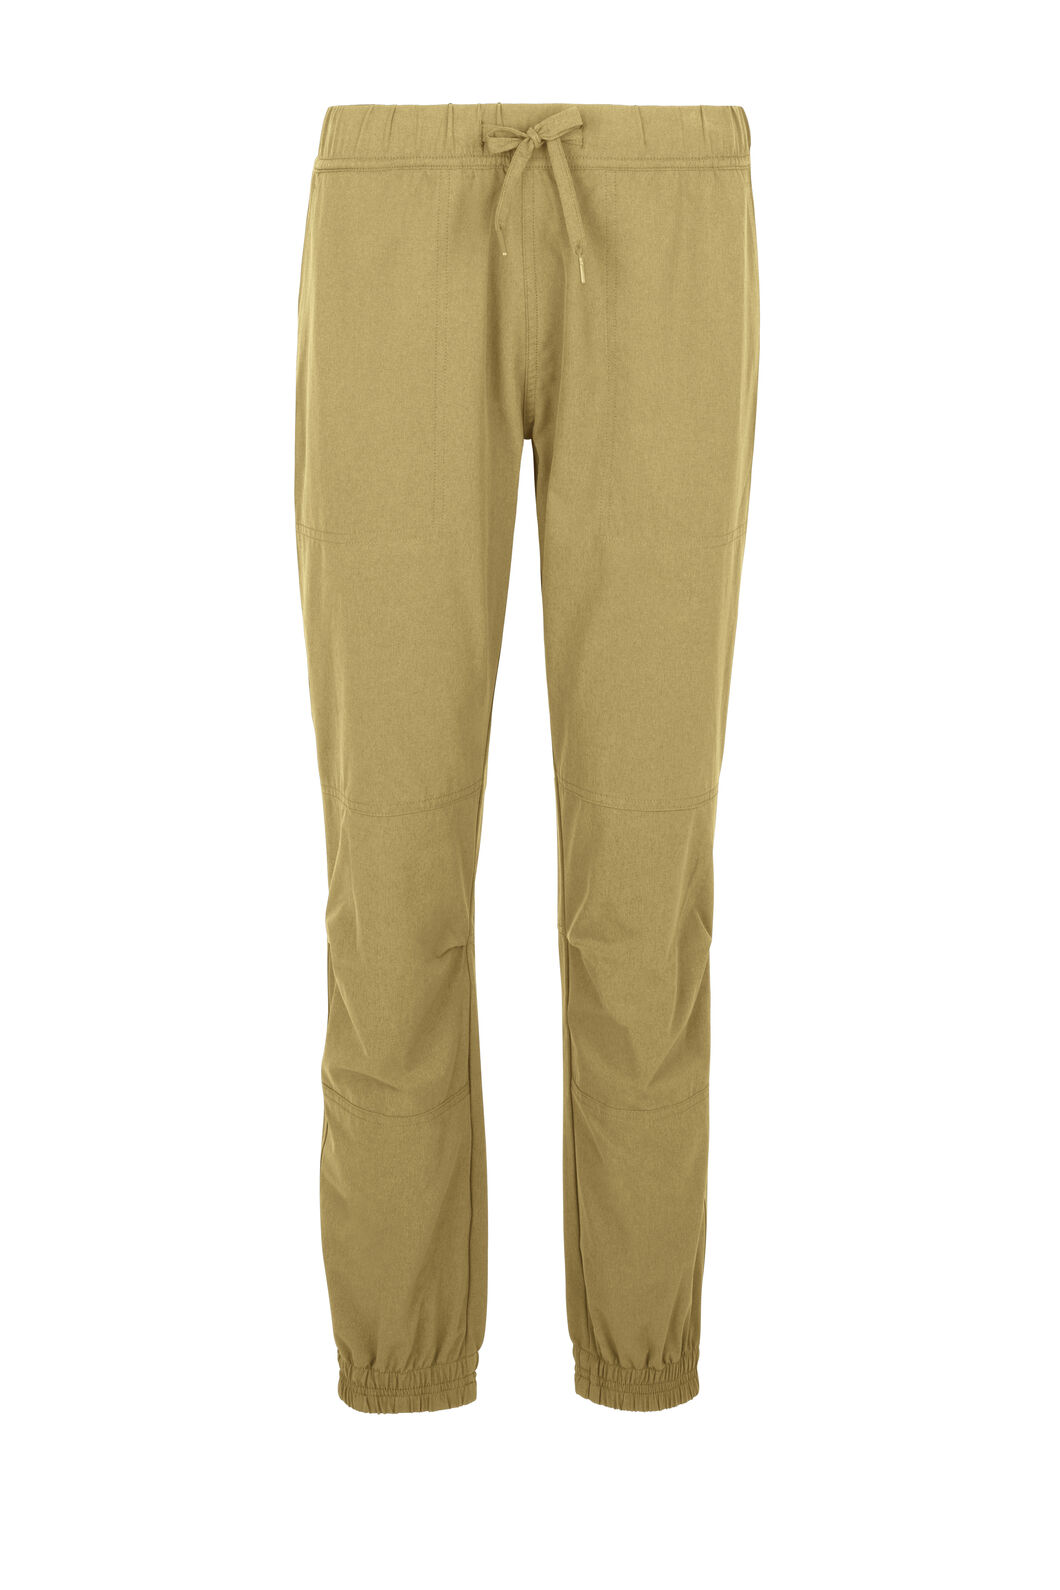 Macpac Casey Pant - Women's, Antique Bronze, hi-res